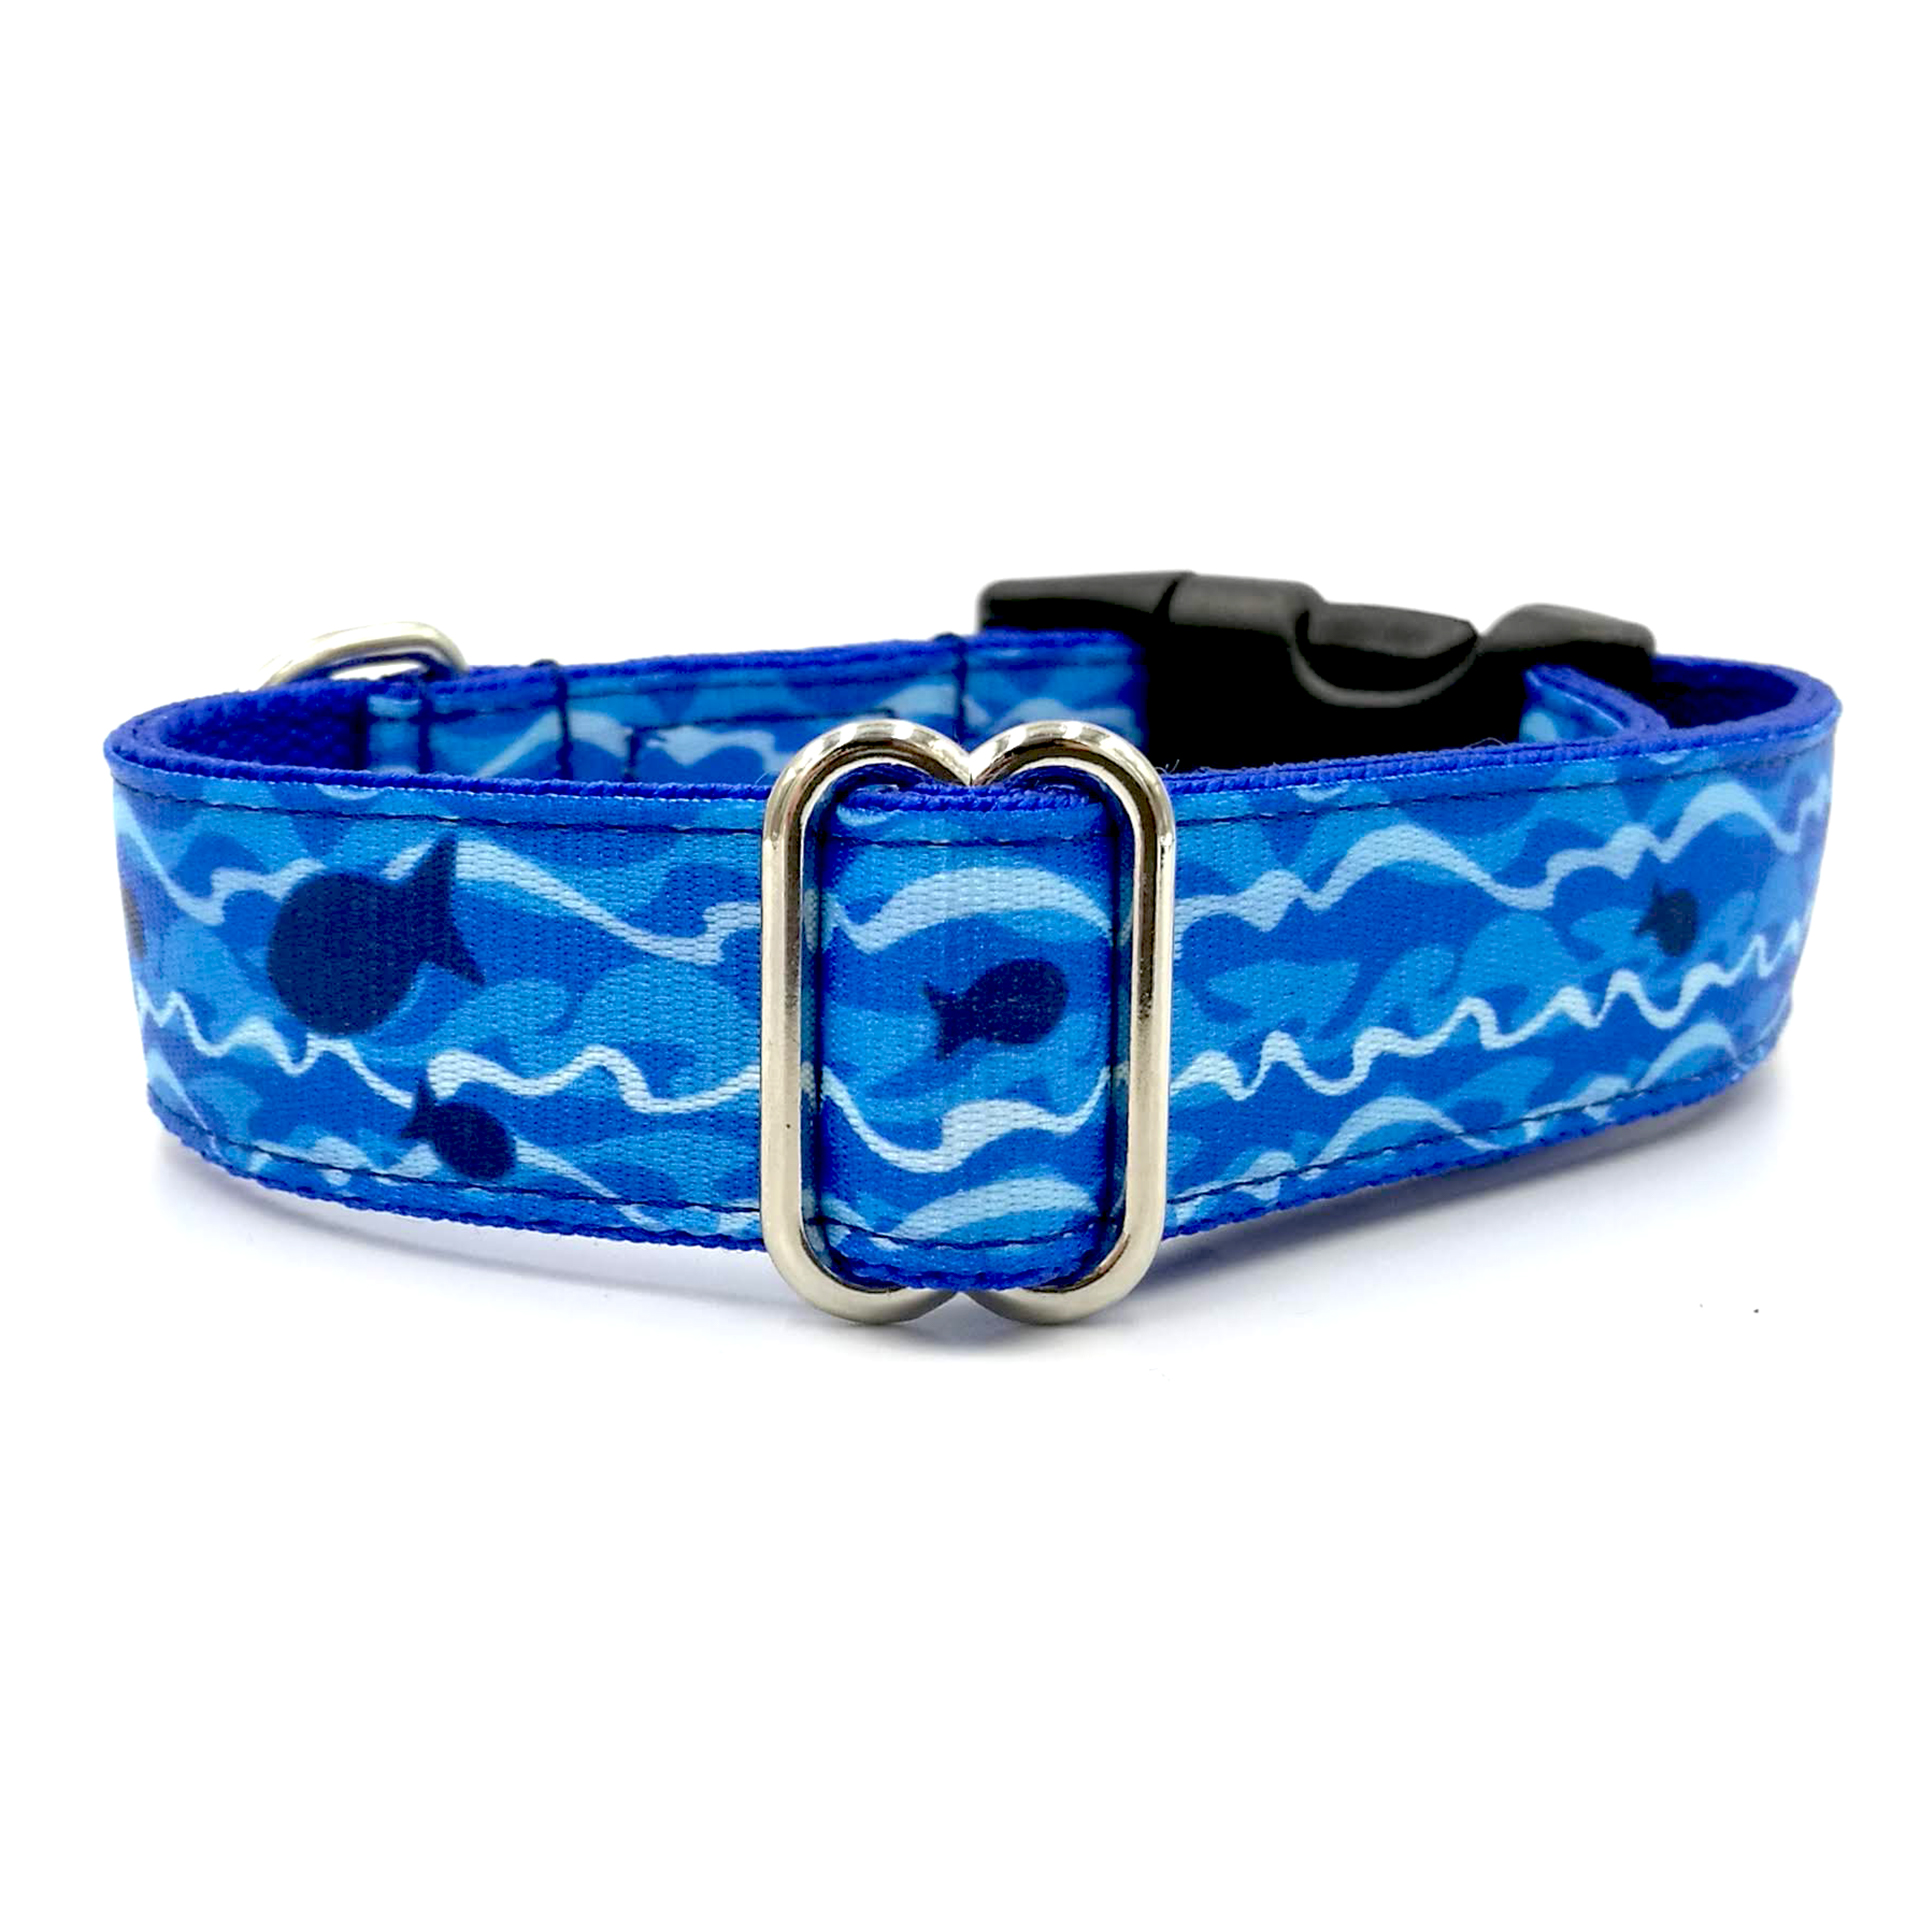 Fisherman dog collar